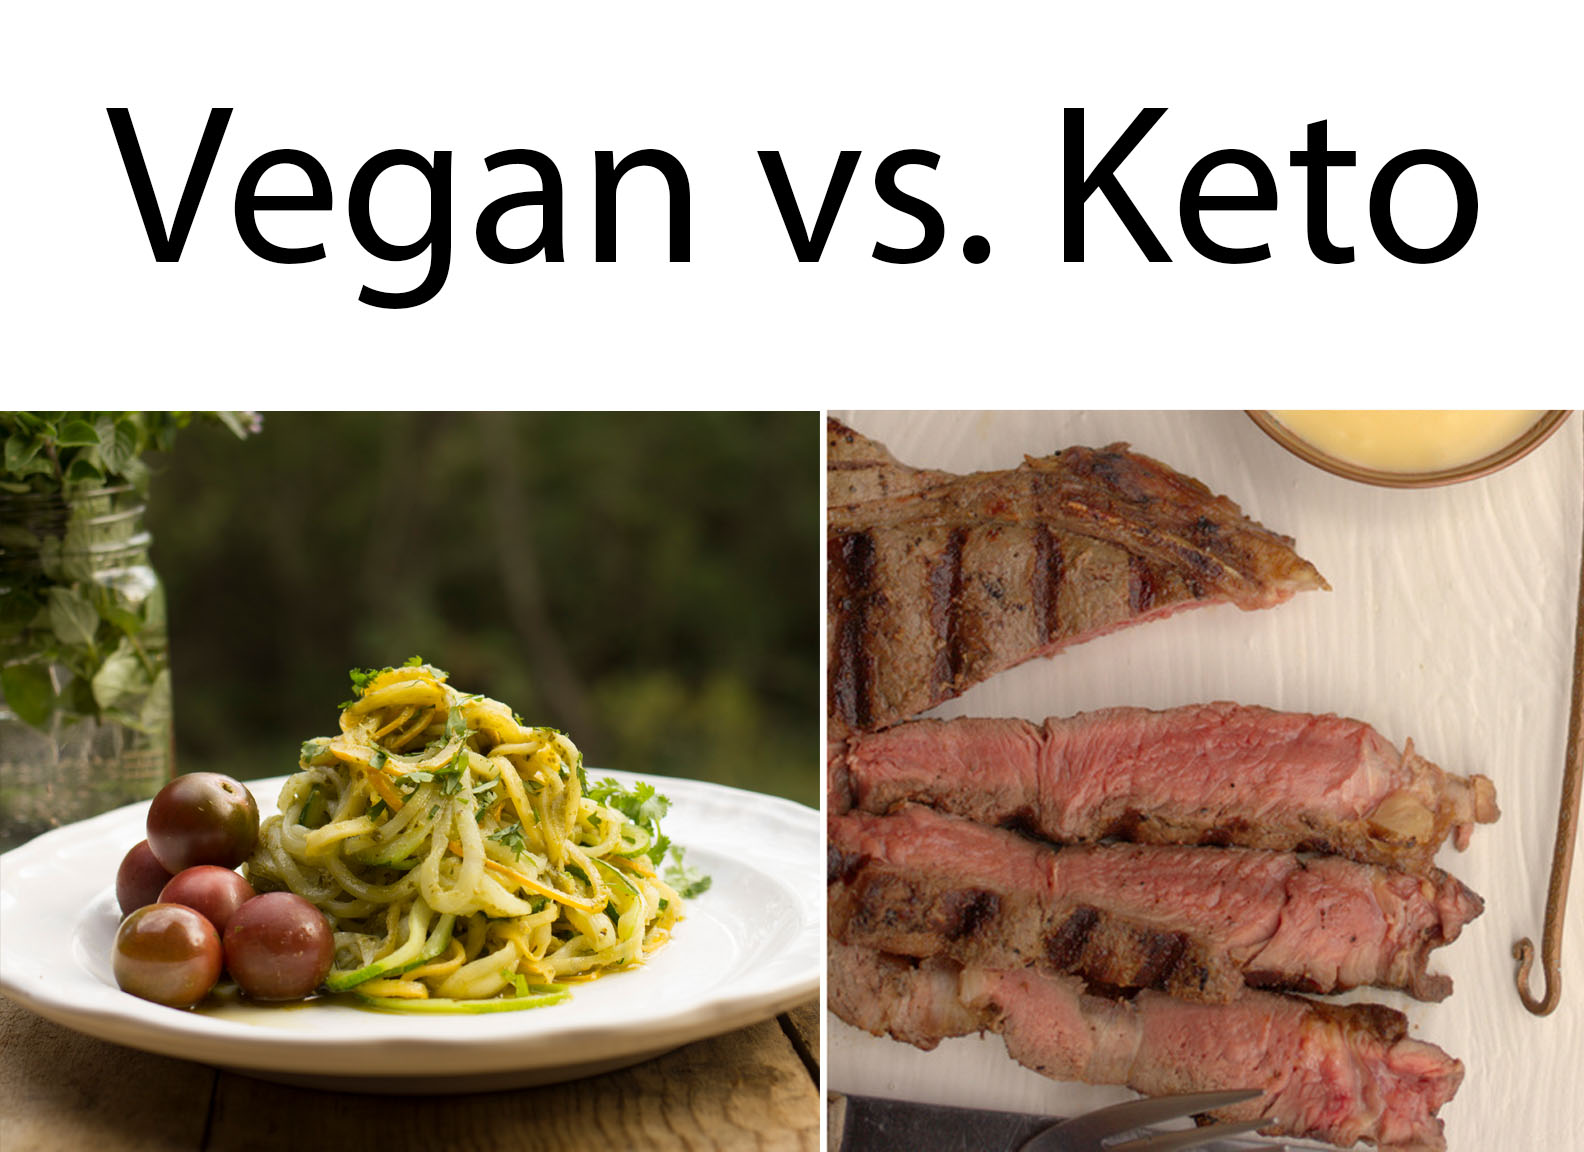 vegan diet compared to keto